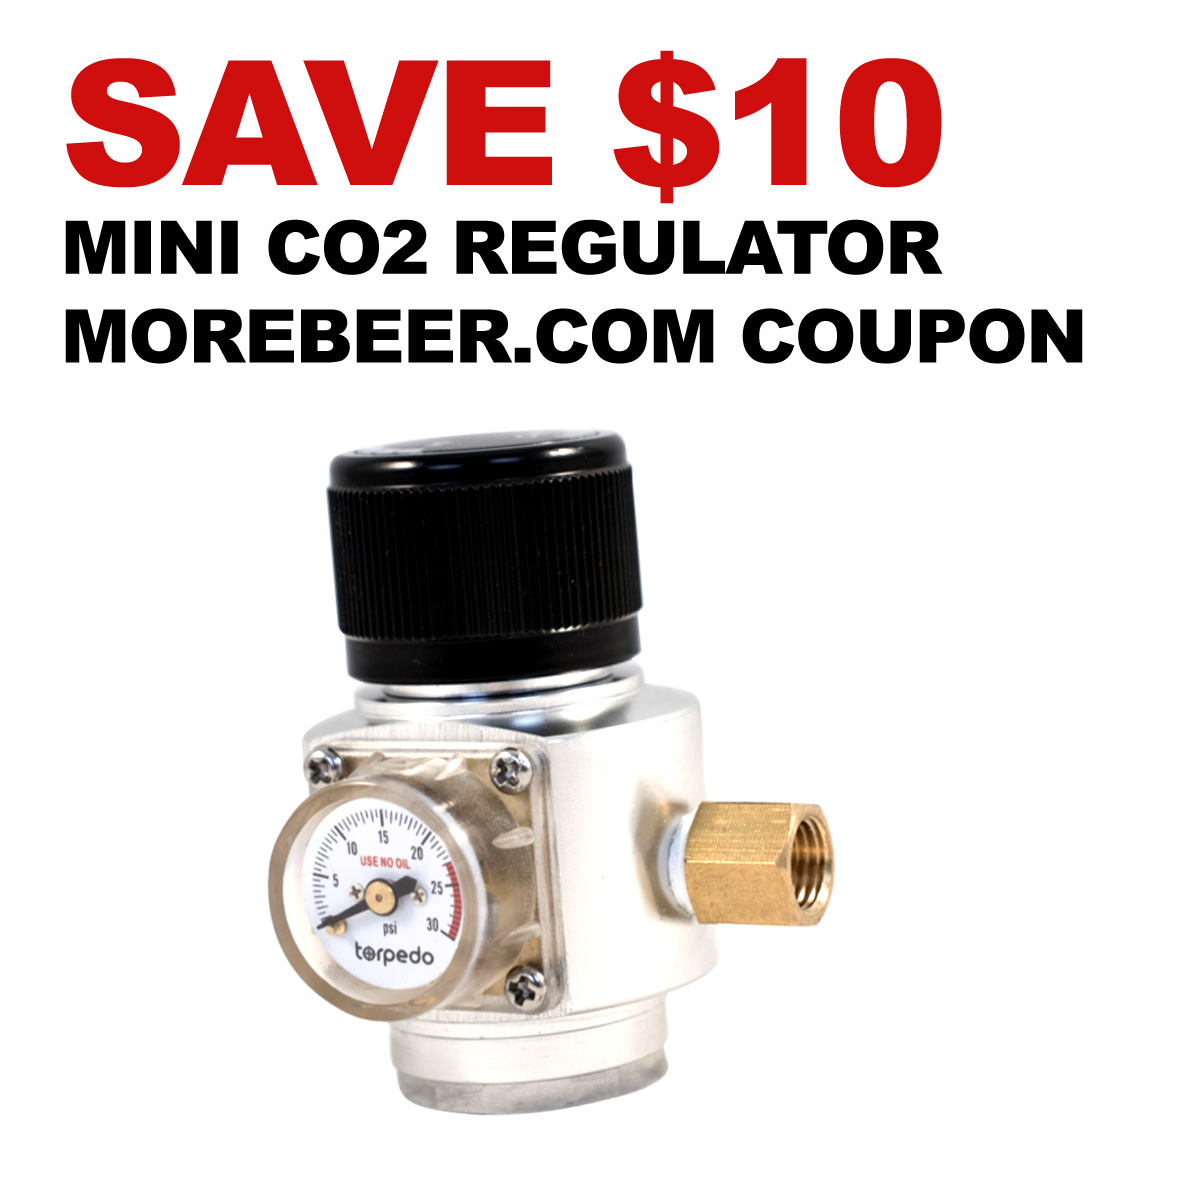 Save $10 On A Mini CO2 Regulator With This More Beer Coupon Coupon Code